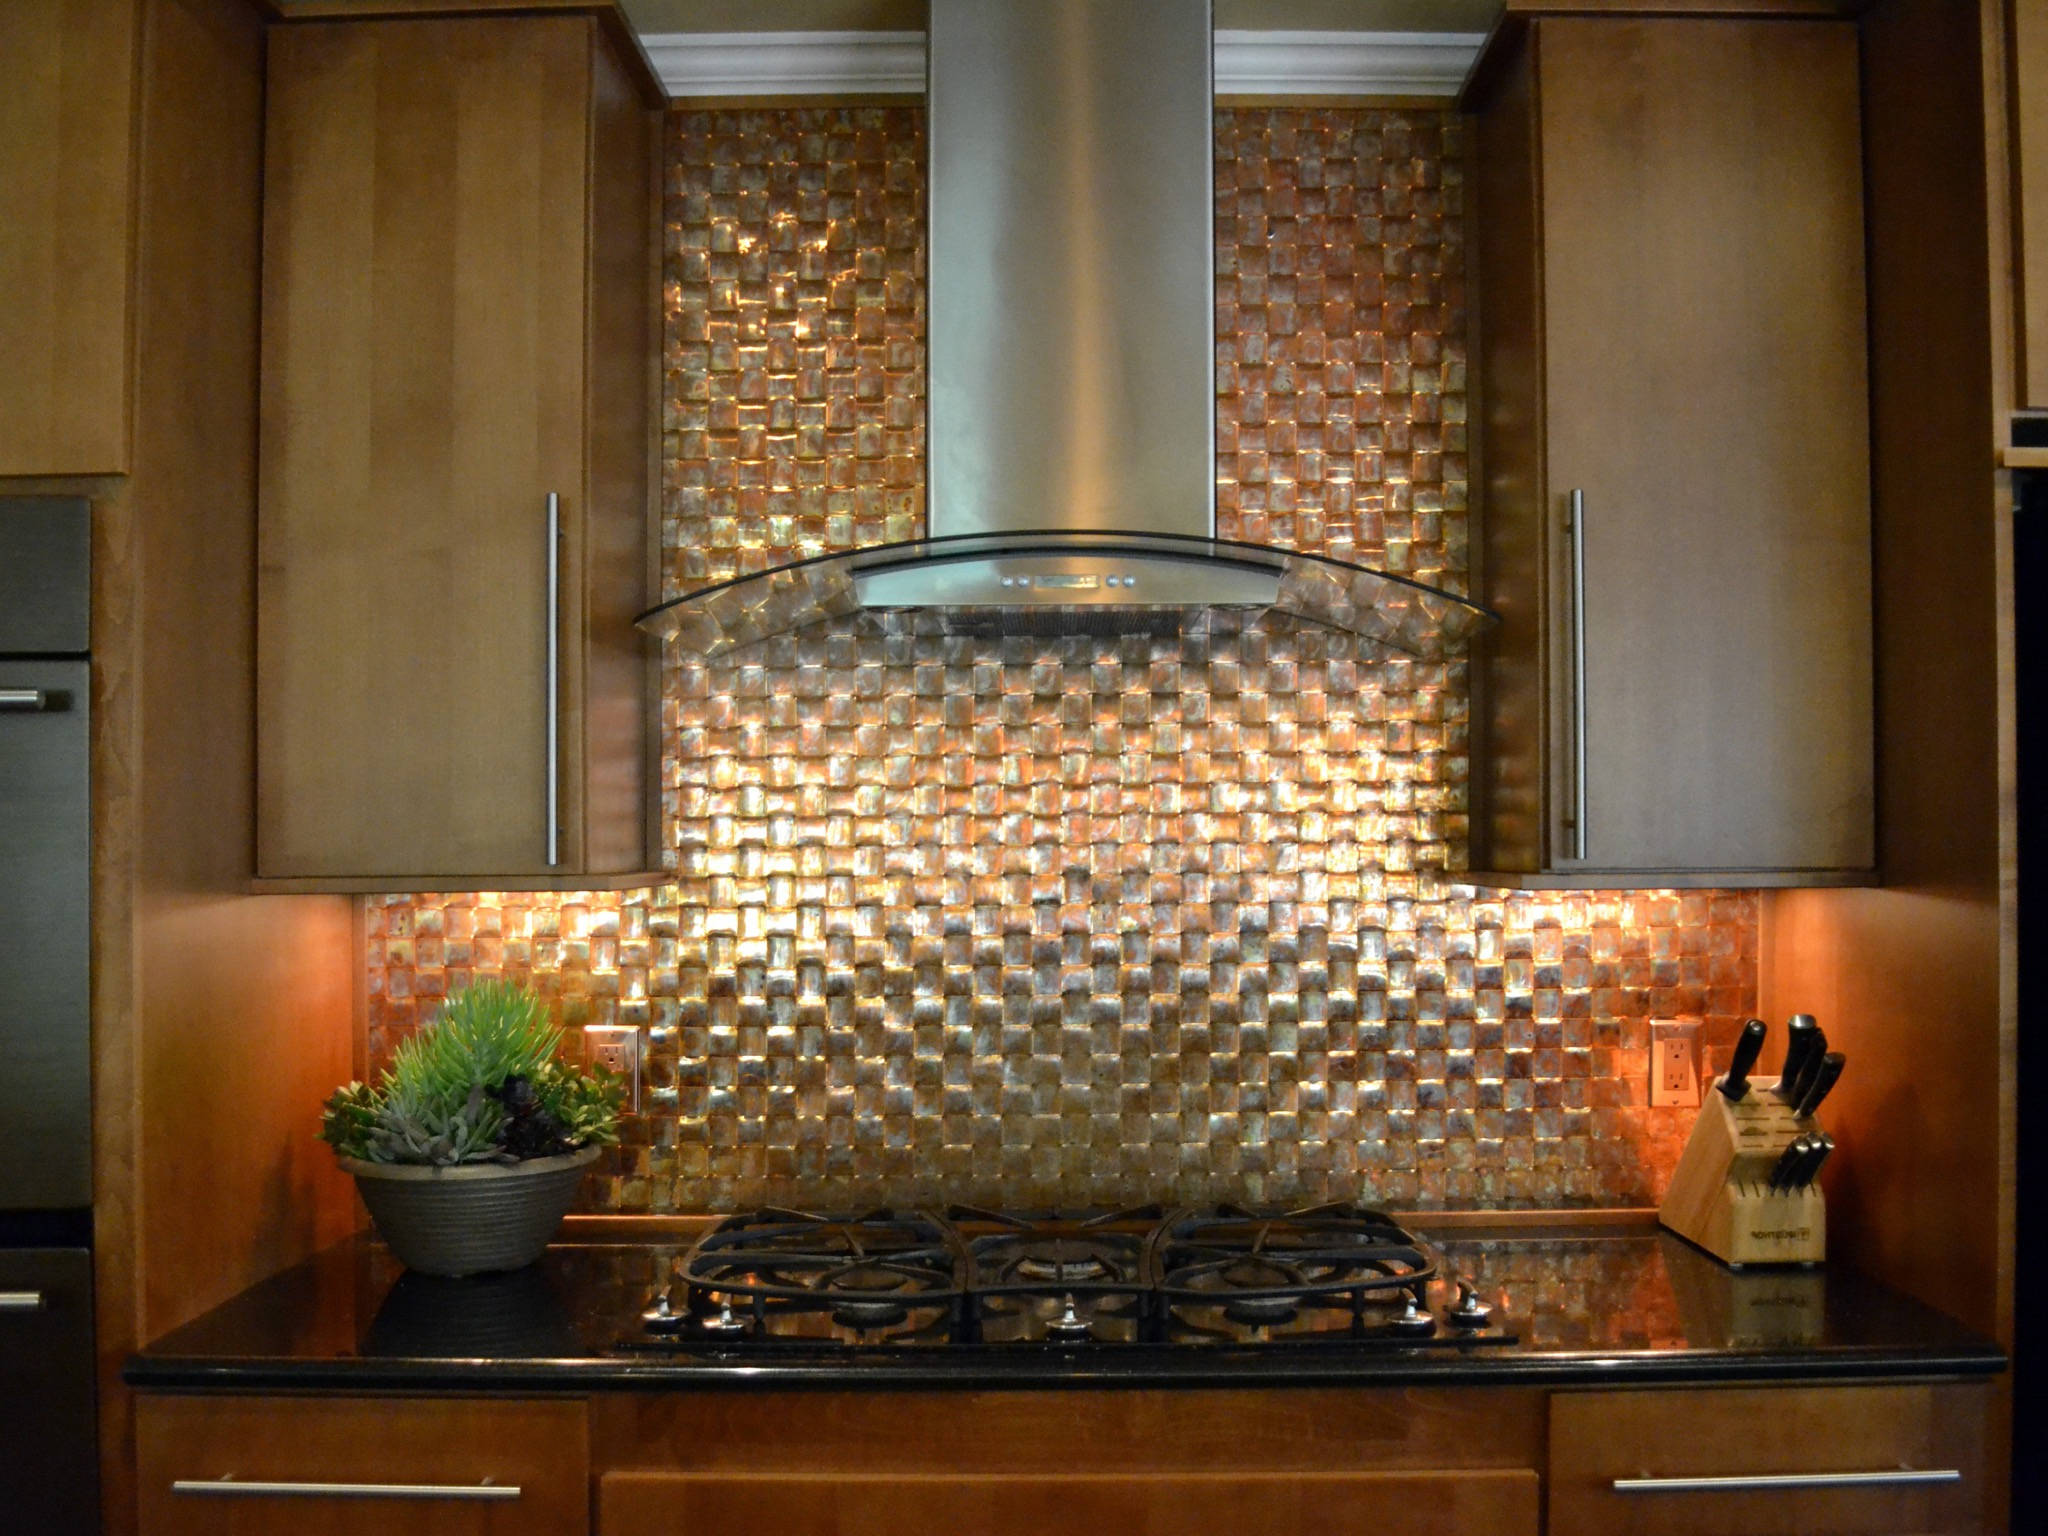 kitchen custom sink backsplash ideas for your new kitchen 17 of kitchen with basket weave copper backsplash